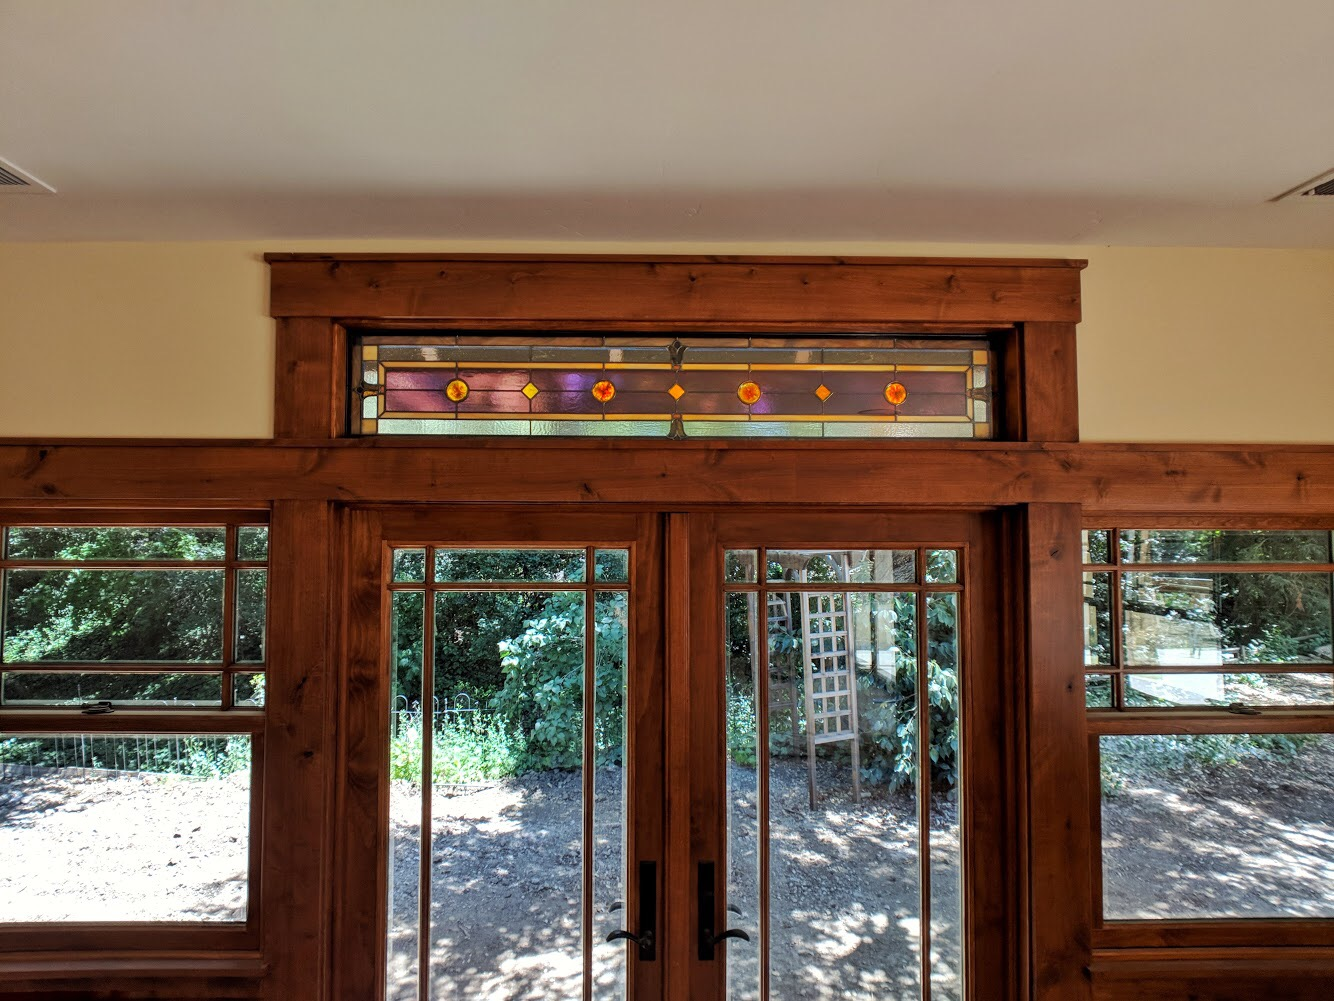 stained glass leaded glass design legacy glass studios menlo park bay area california custom design craftsman home mouth blown rondels tulip design transom insulated window.JPG